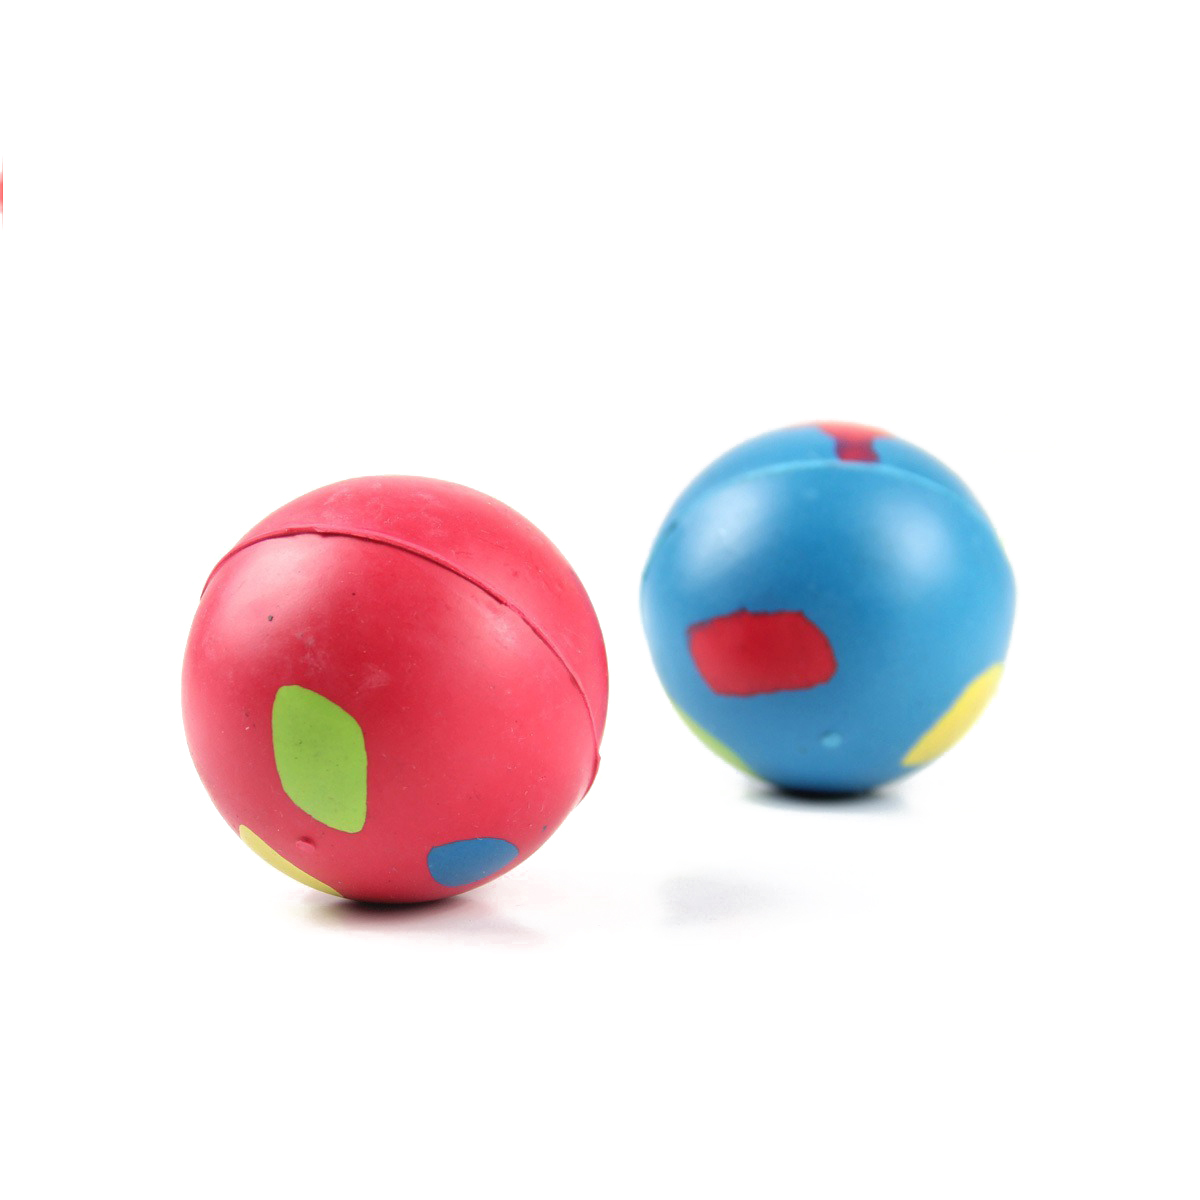 Rubber_Big_Ball_Dogs_Trainning_Toy_ITOY0726_original_img_13566704952545_726_.jpg